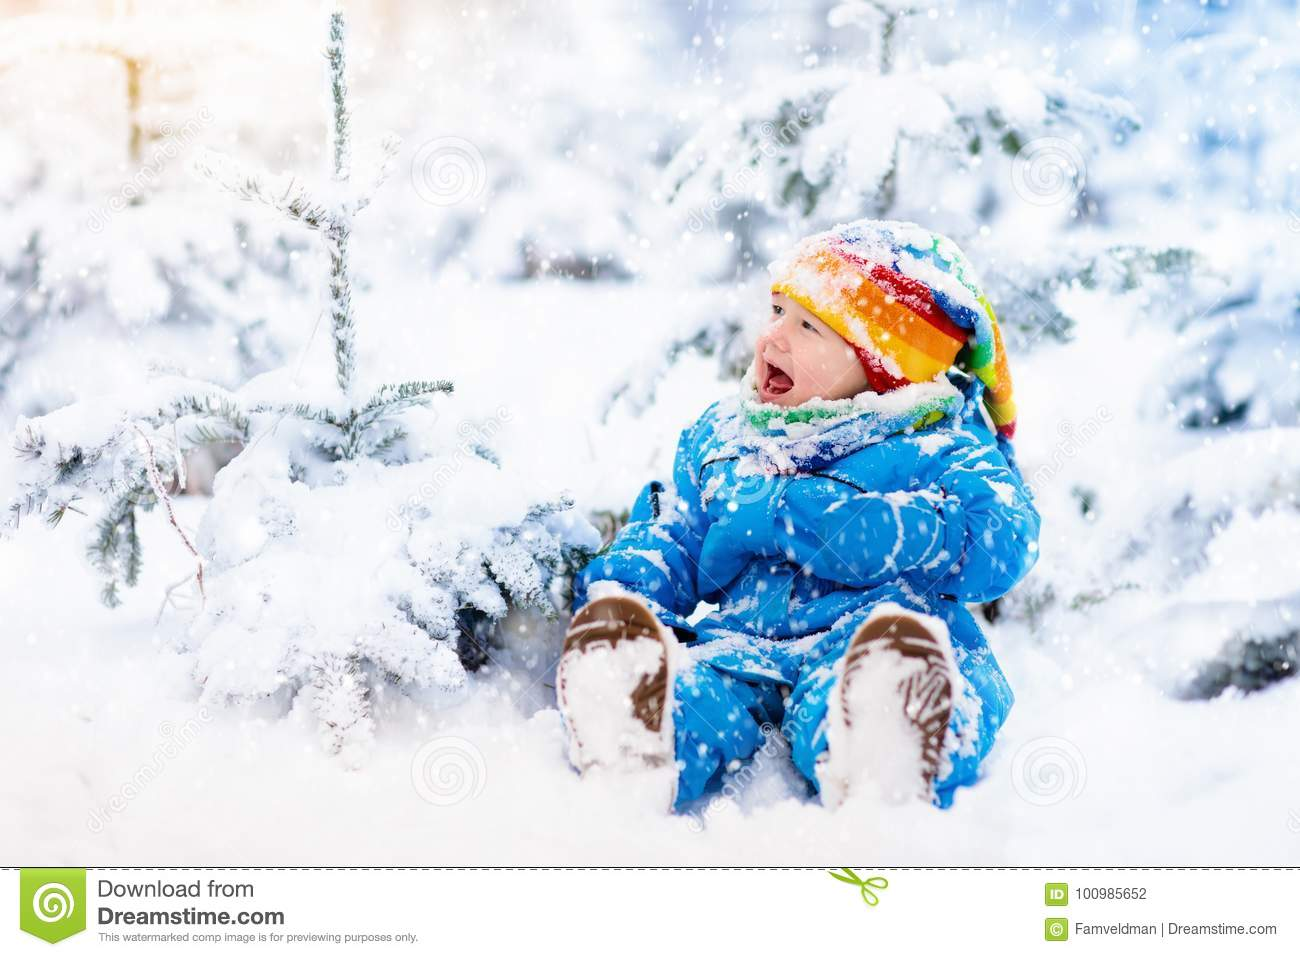 28965576da01 Baby Playing With Snow In Winter. Child In Snowy Park. Stock Photo ...